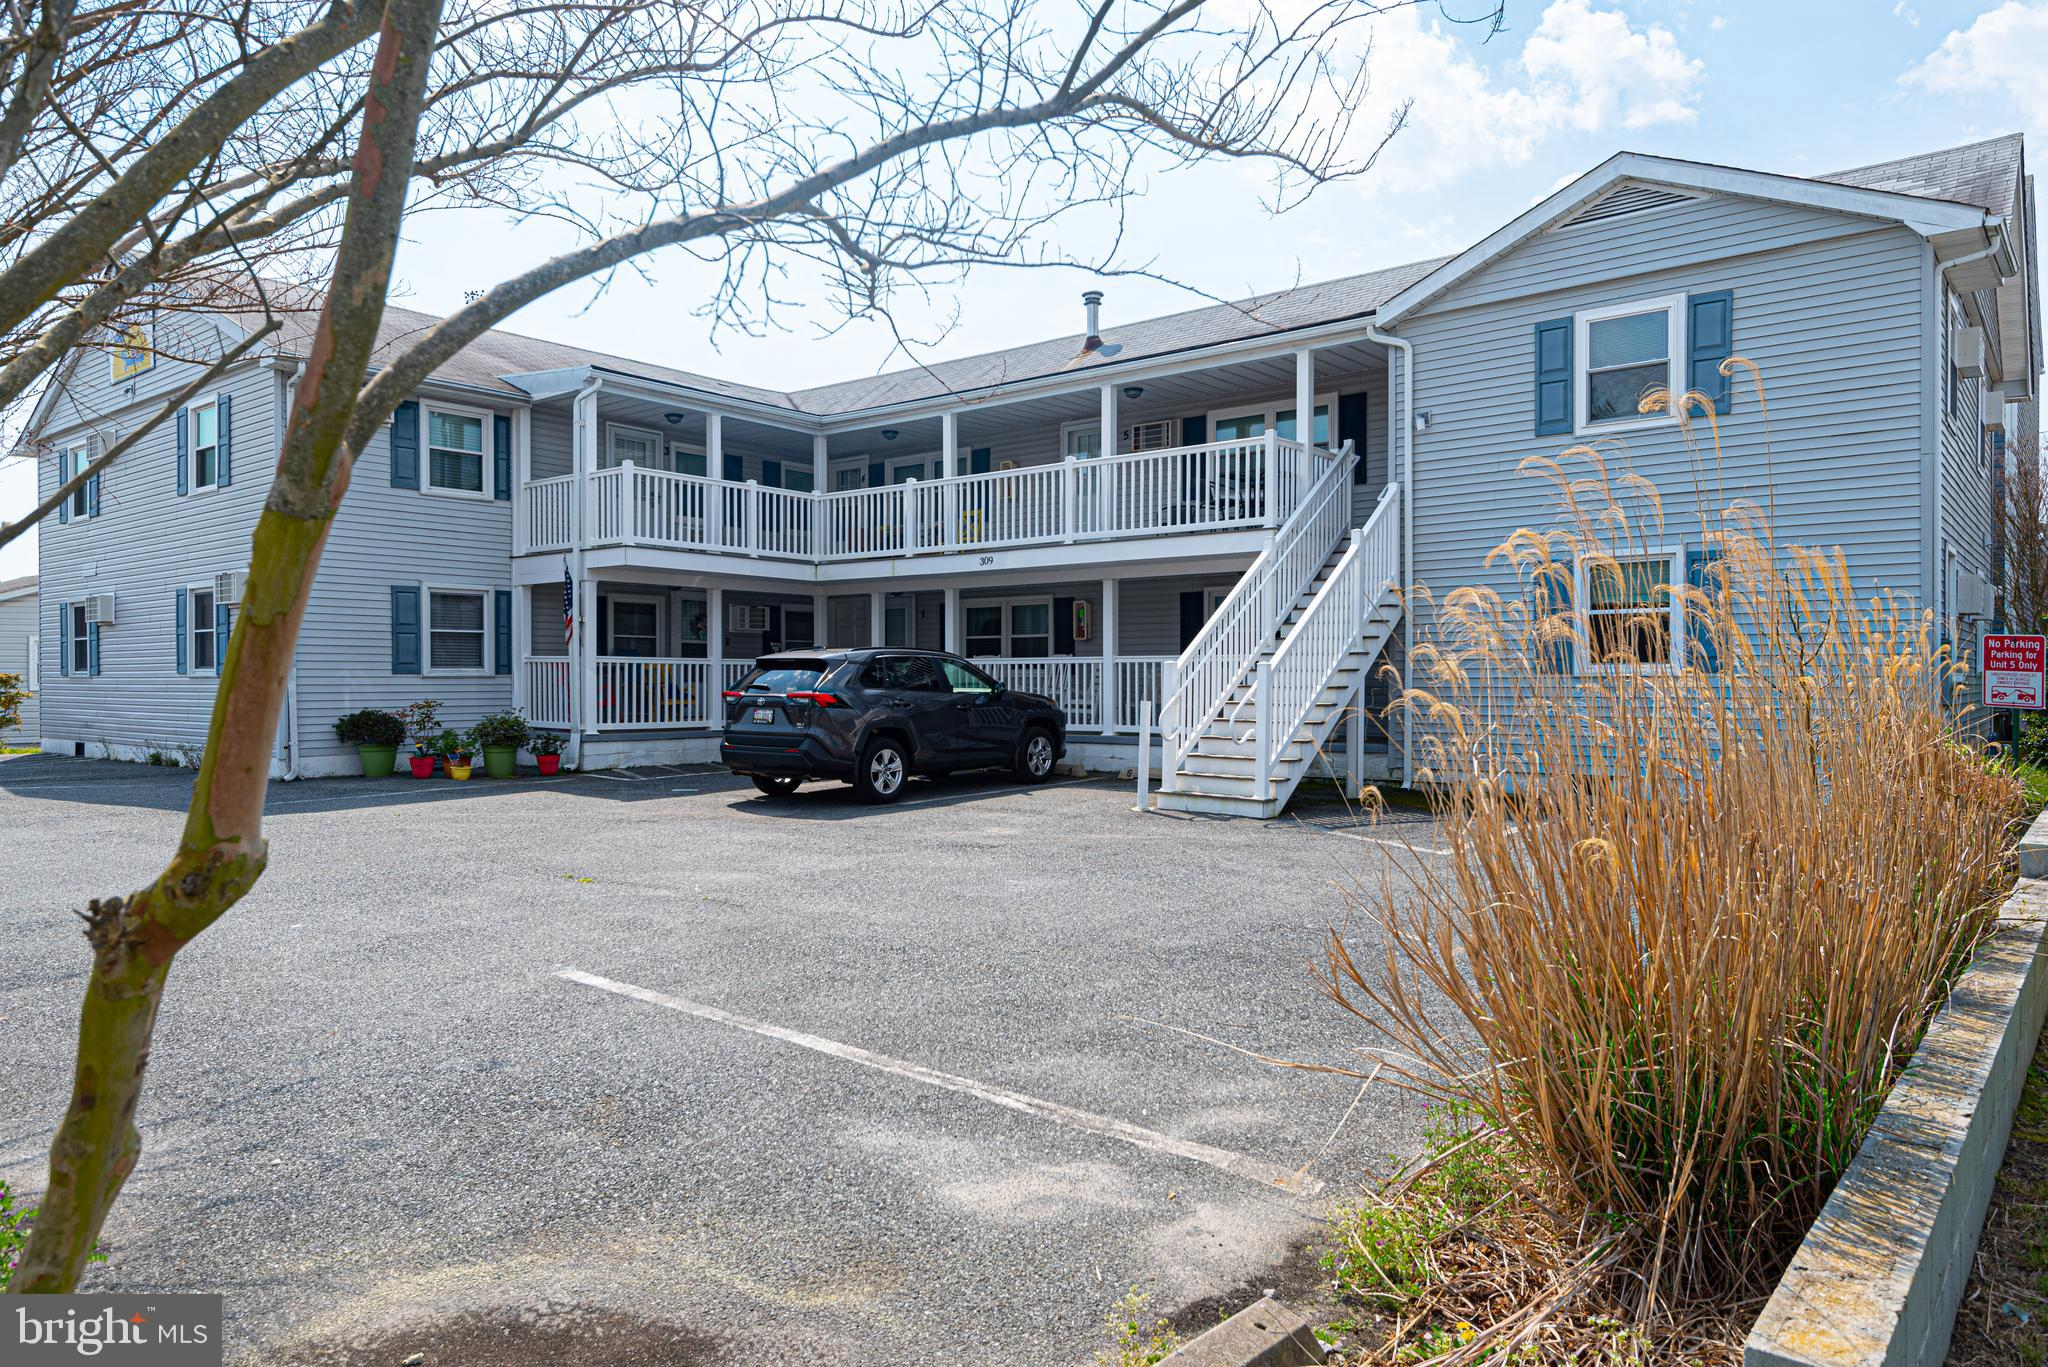 Beautifully furnished and ready to move in! An outstanding location - close to beach and bay! A short minute stroll to fish or enjoy the sunset. Convenient to restaurants, entertainment and shopping.  This well maintained 2 bed/1 bath is spacious and has many new and upgraded furnishings, to include a new deck 2018, new carpeting 2018, new windows 2019, new upgraded bathroom and walk-in shower in summer 2019,  new washer and dryer 2020, and beautiful top-quality furnishings.  It has never been rented.  Start making your memories now! Now is the time to Invest In The Beach Lifestyle?